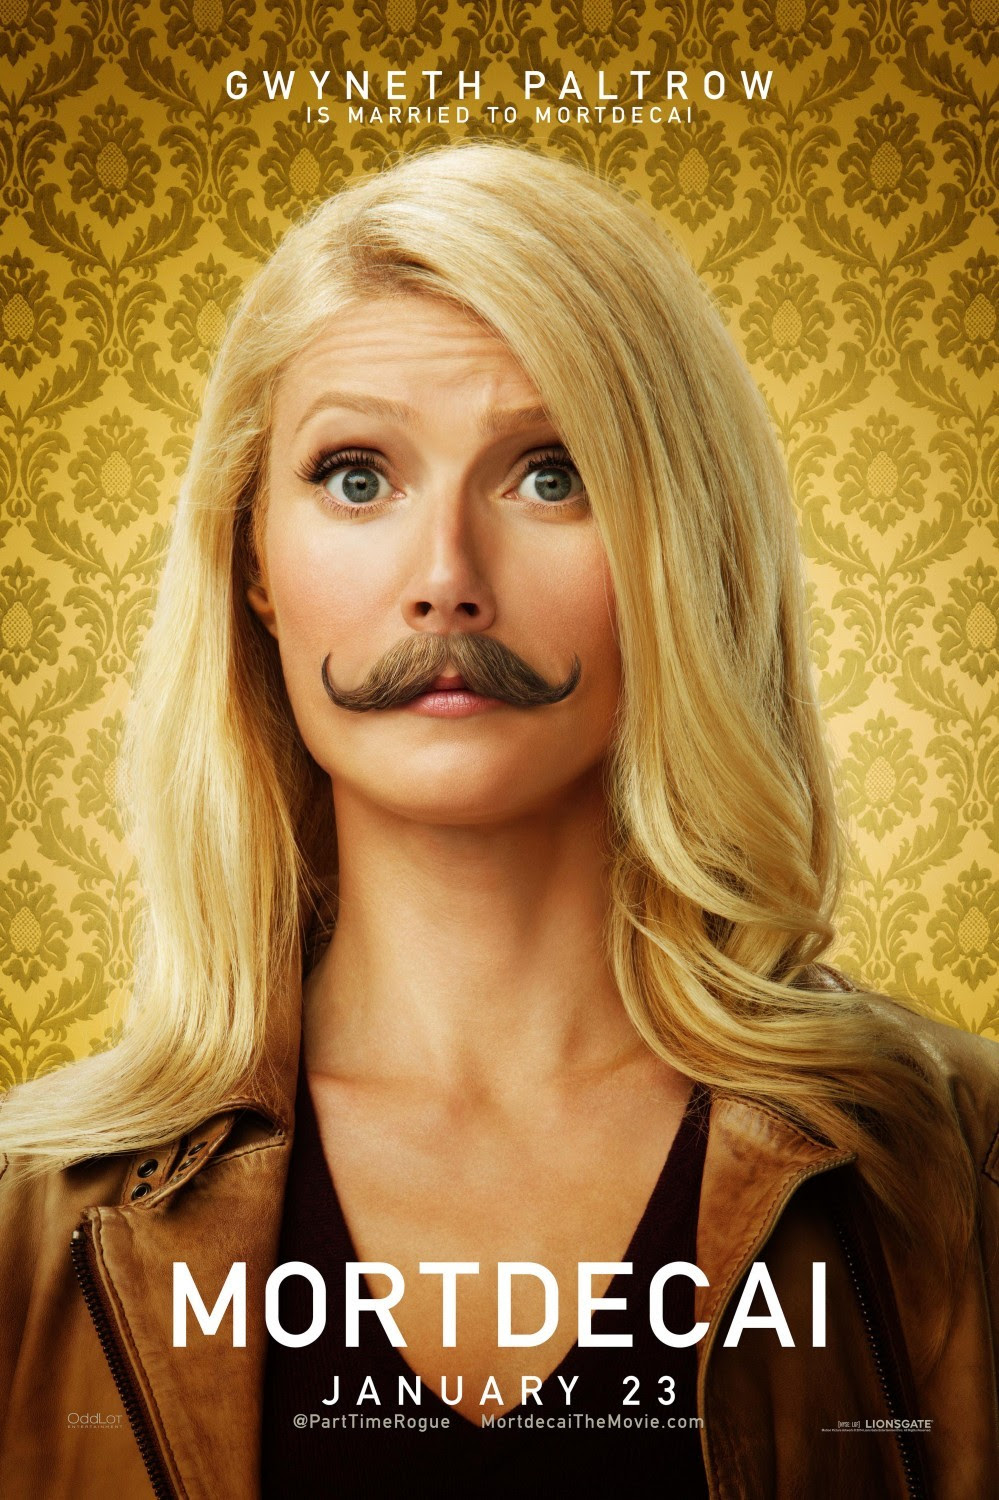 click to see all 4 character posters from Mortdecai.